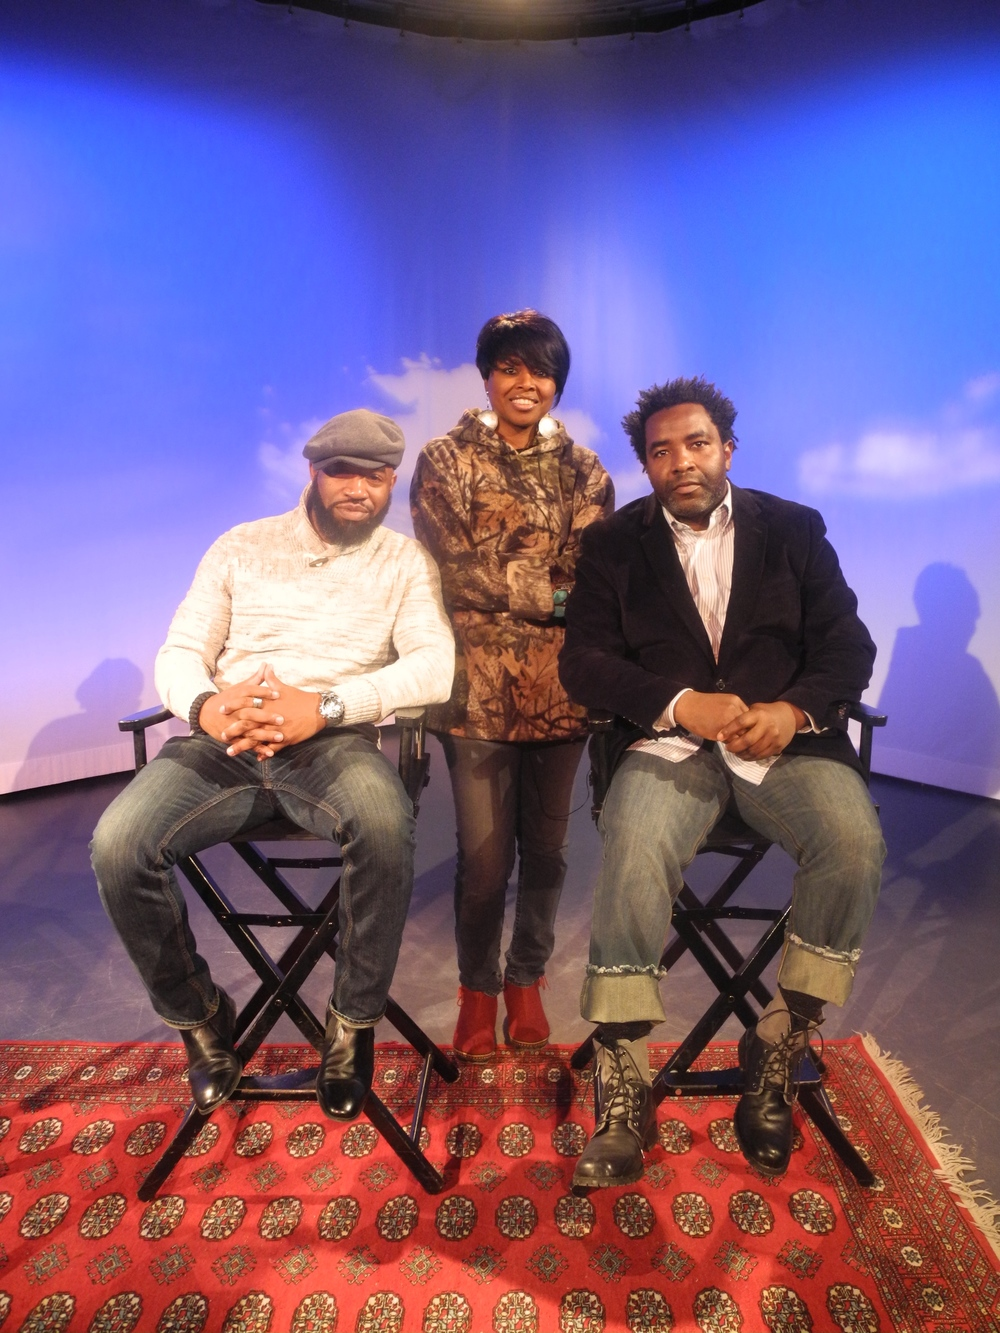 Shelita Birchett Benash with Anthony E. Boone and Noel Donaldson at the MNN studios in NYC. February 11, 2015.